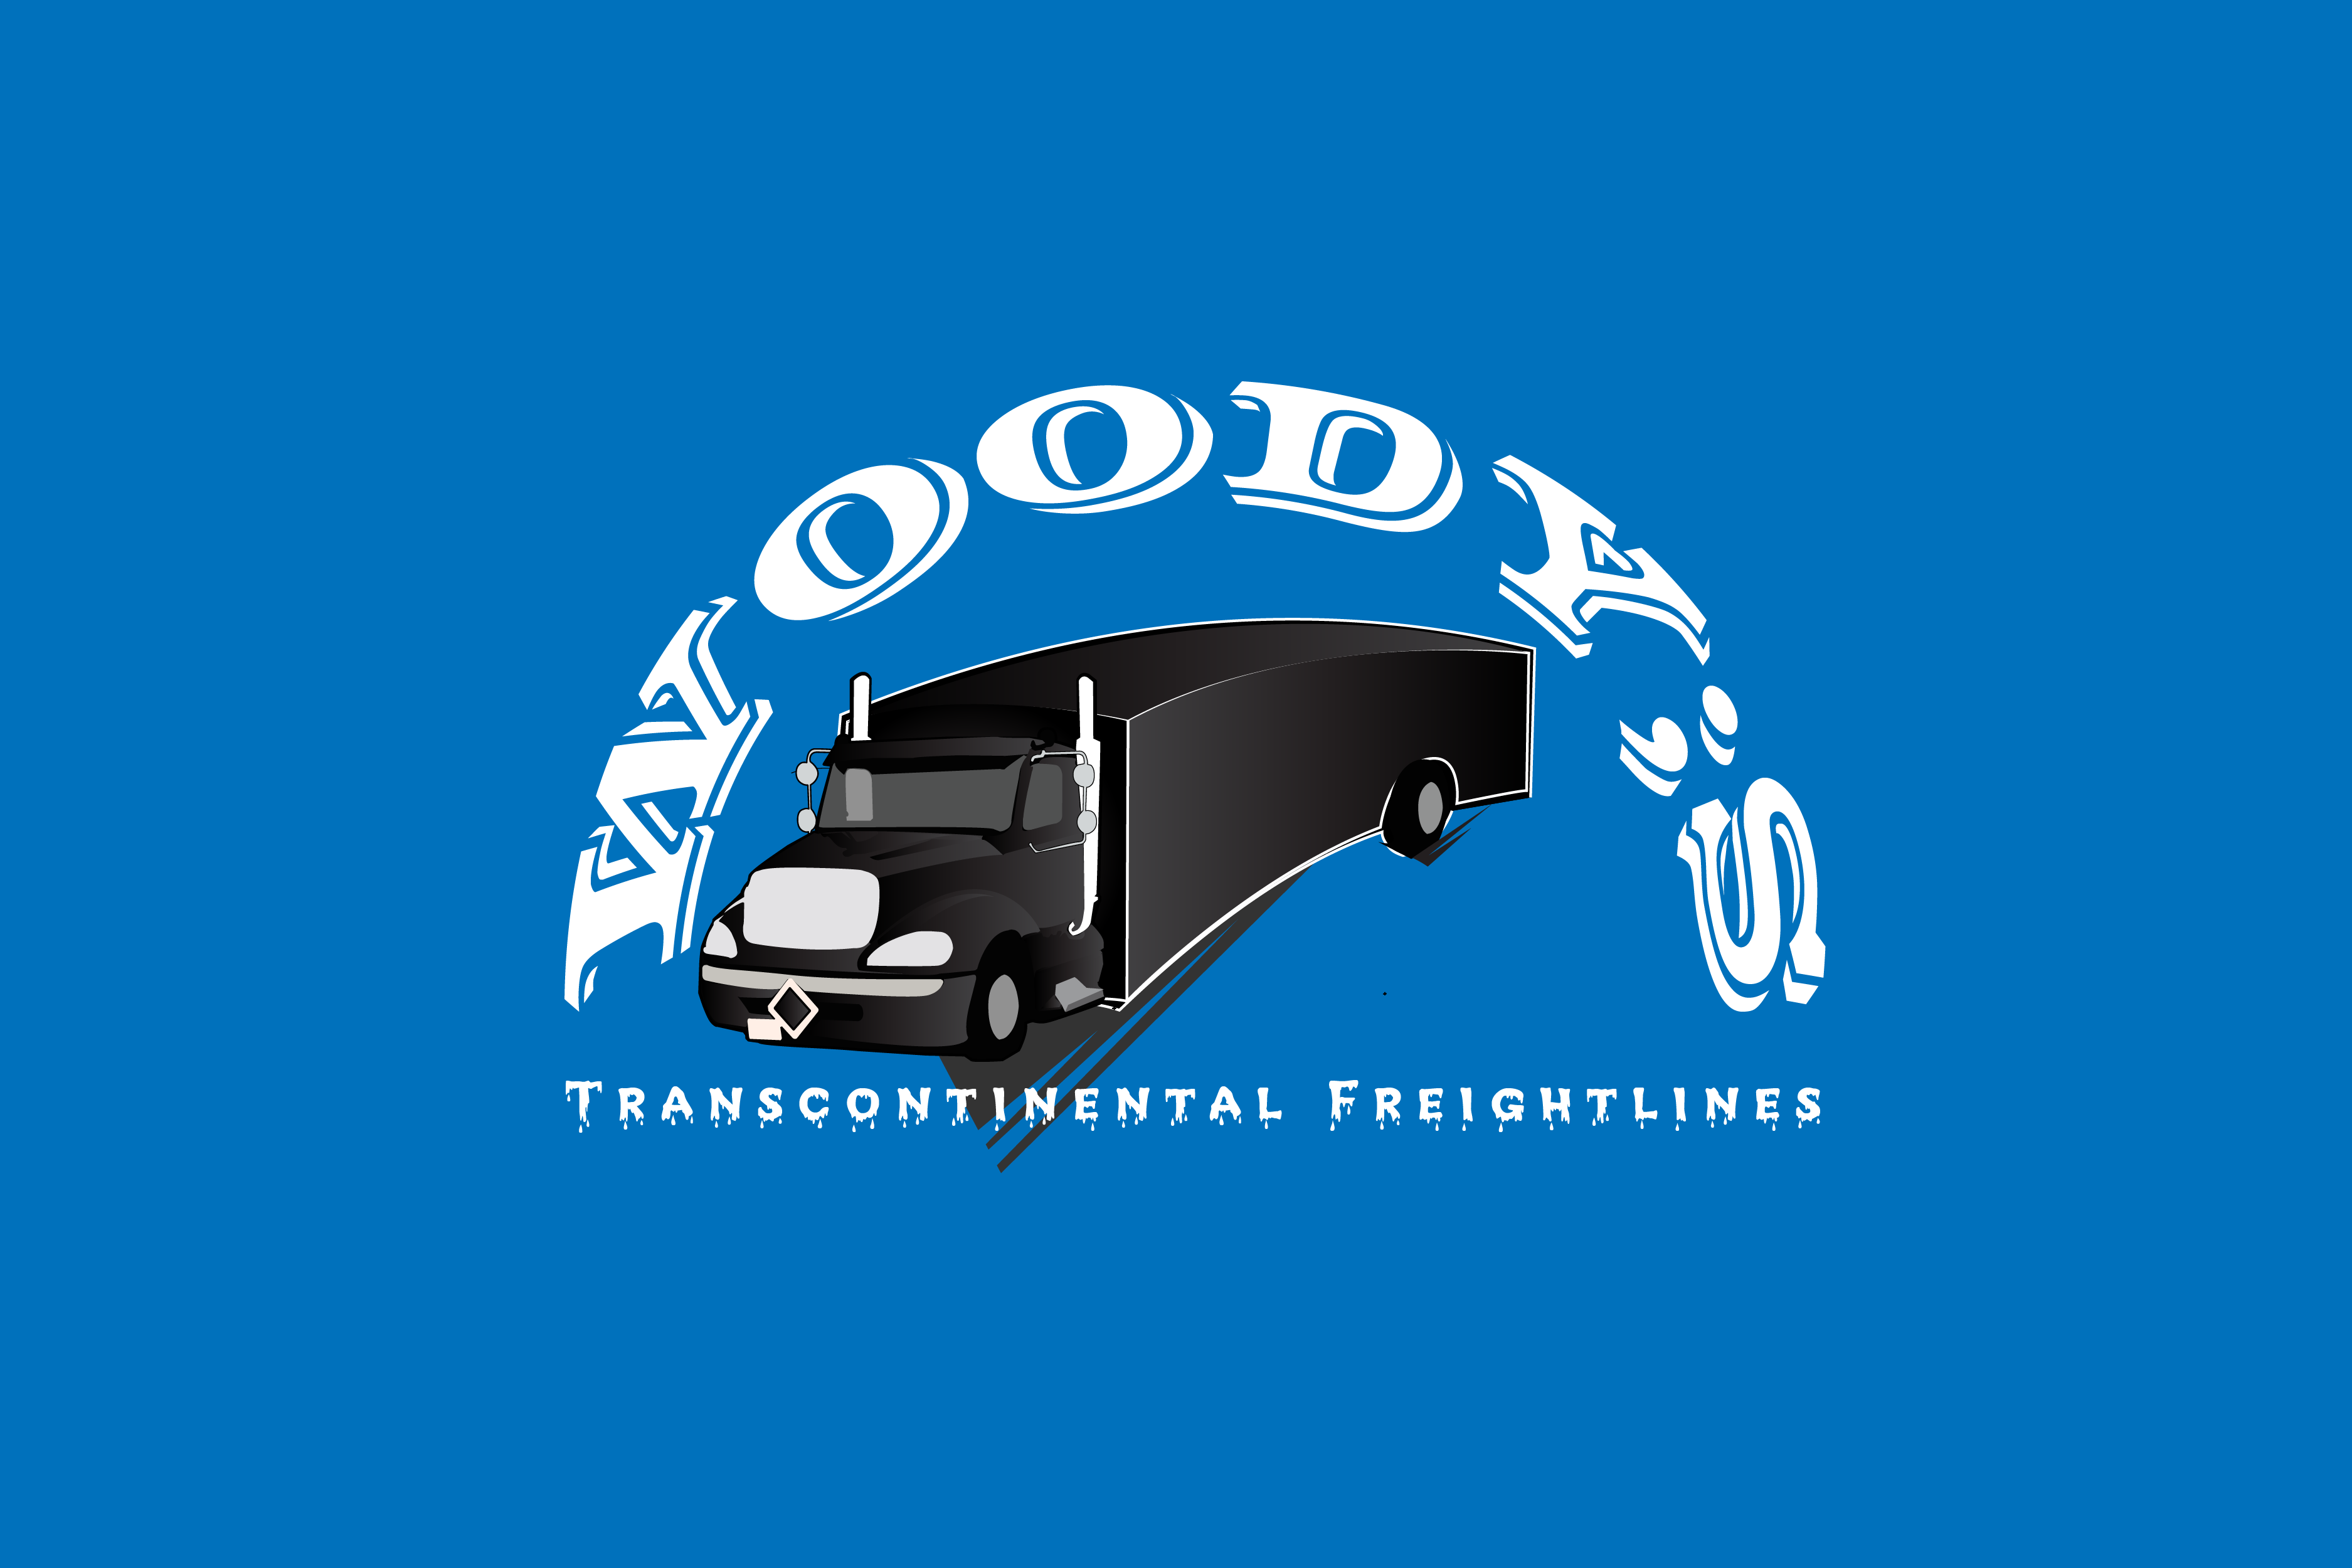 Logo Design by Private User - Entry No. 63 in the Logo Design Contest Creative Logo Design for Woody's Transcontinental Freightlines.